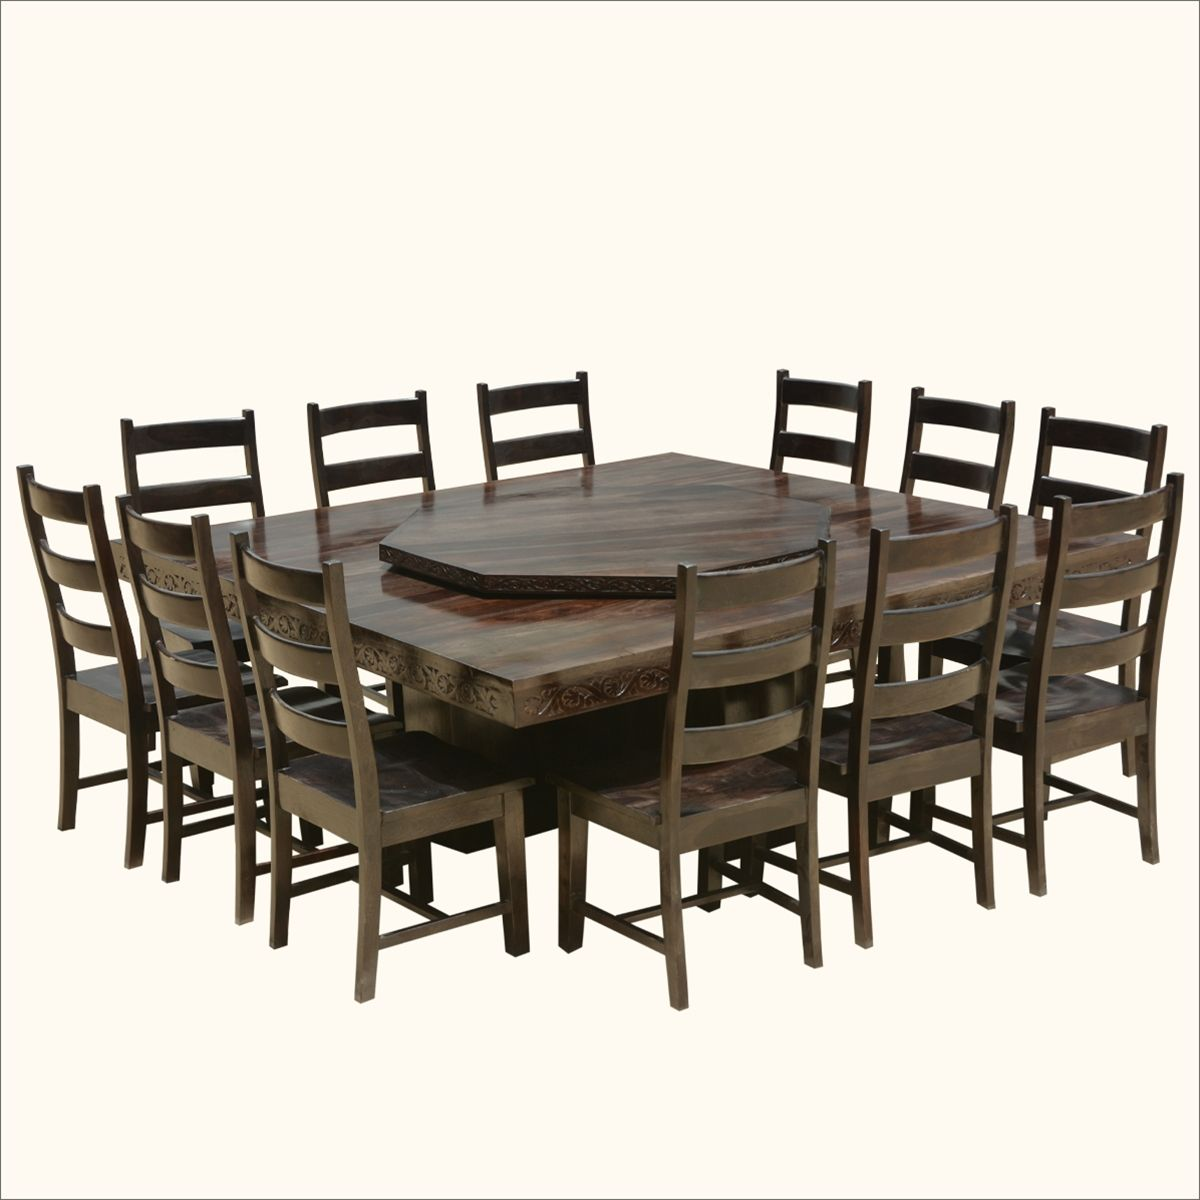 Modern Pioneer Solid Wood Lazy Susan Pedestal Dining Table 12